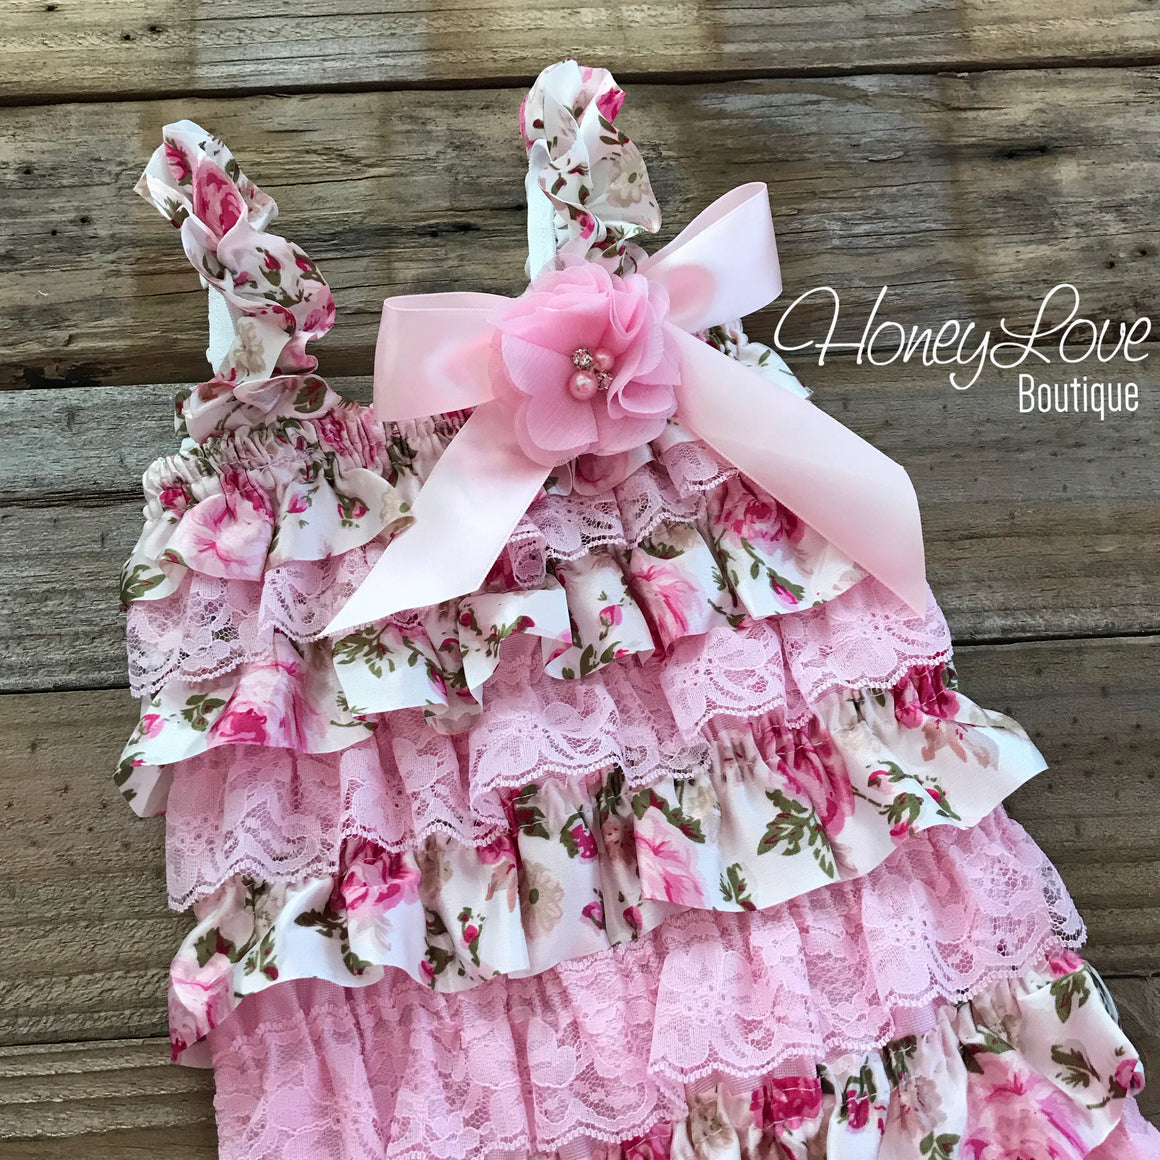 Floral Satin & Pink Lace Petti Romper with embellished rhinestone pearl flower bow, vintage floral inspired pettiromper, smash cake Birthday - HoneyLoveBoutique